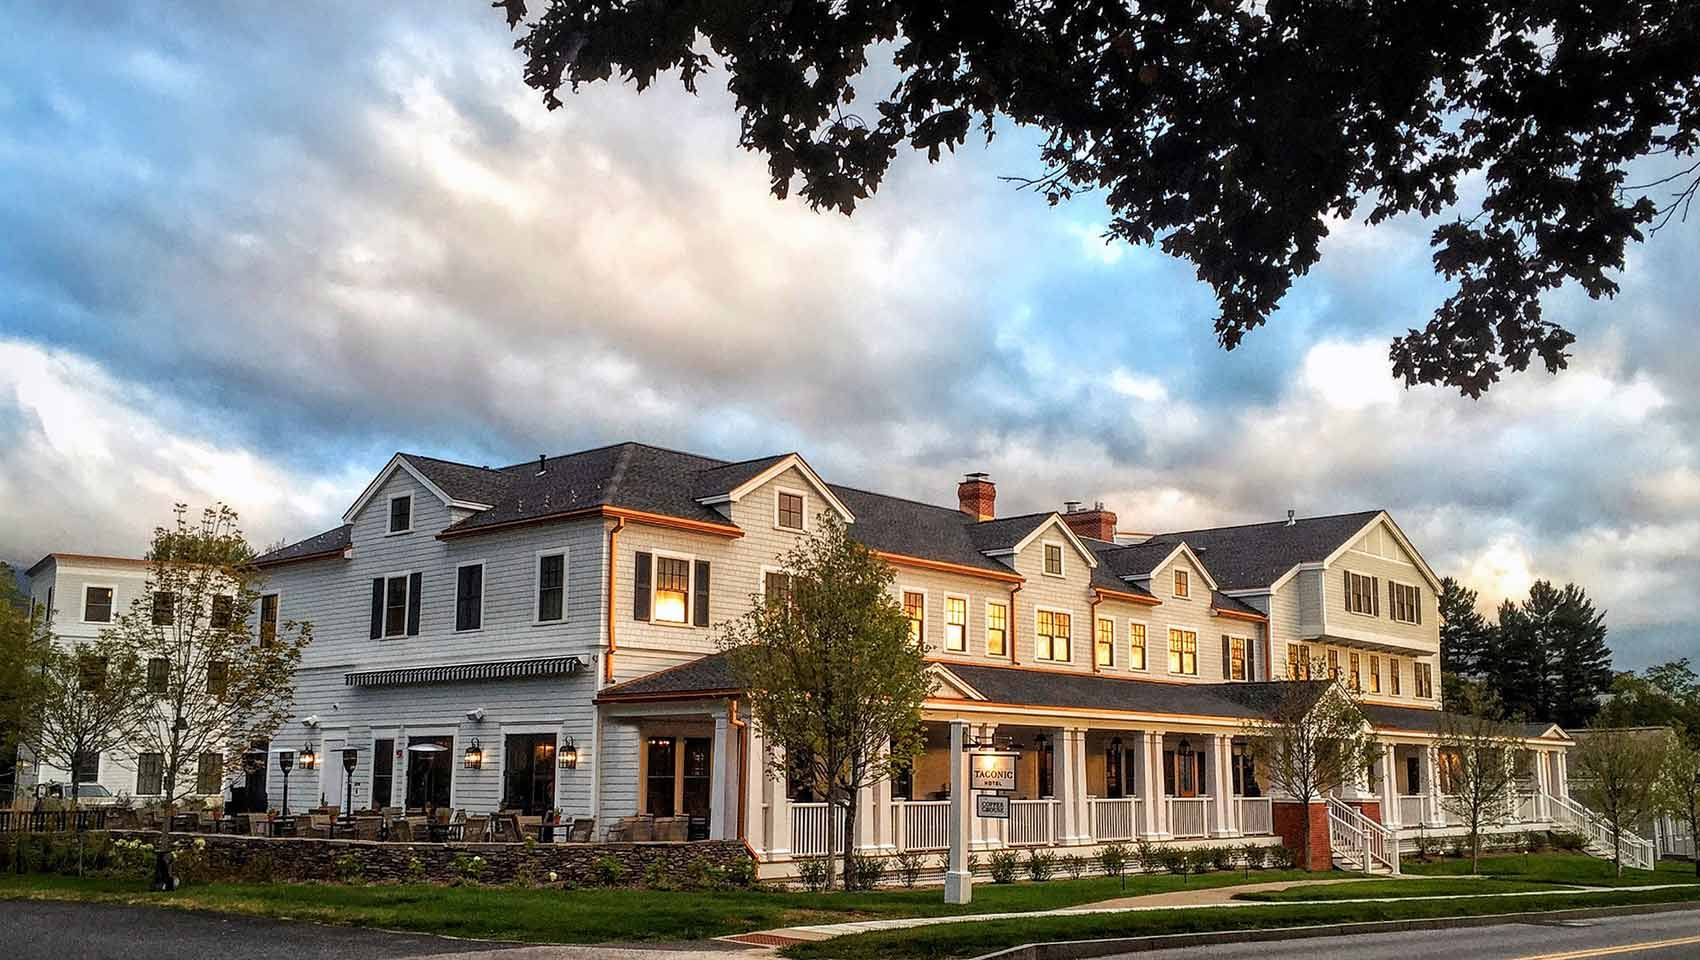 Kimpton Taconic Hotel Manchester Vt With Images Taconic